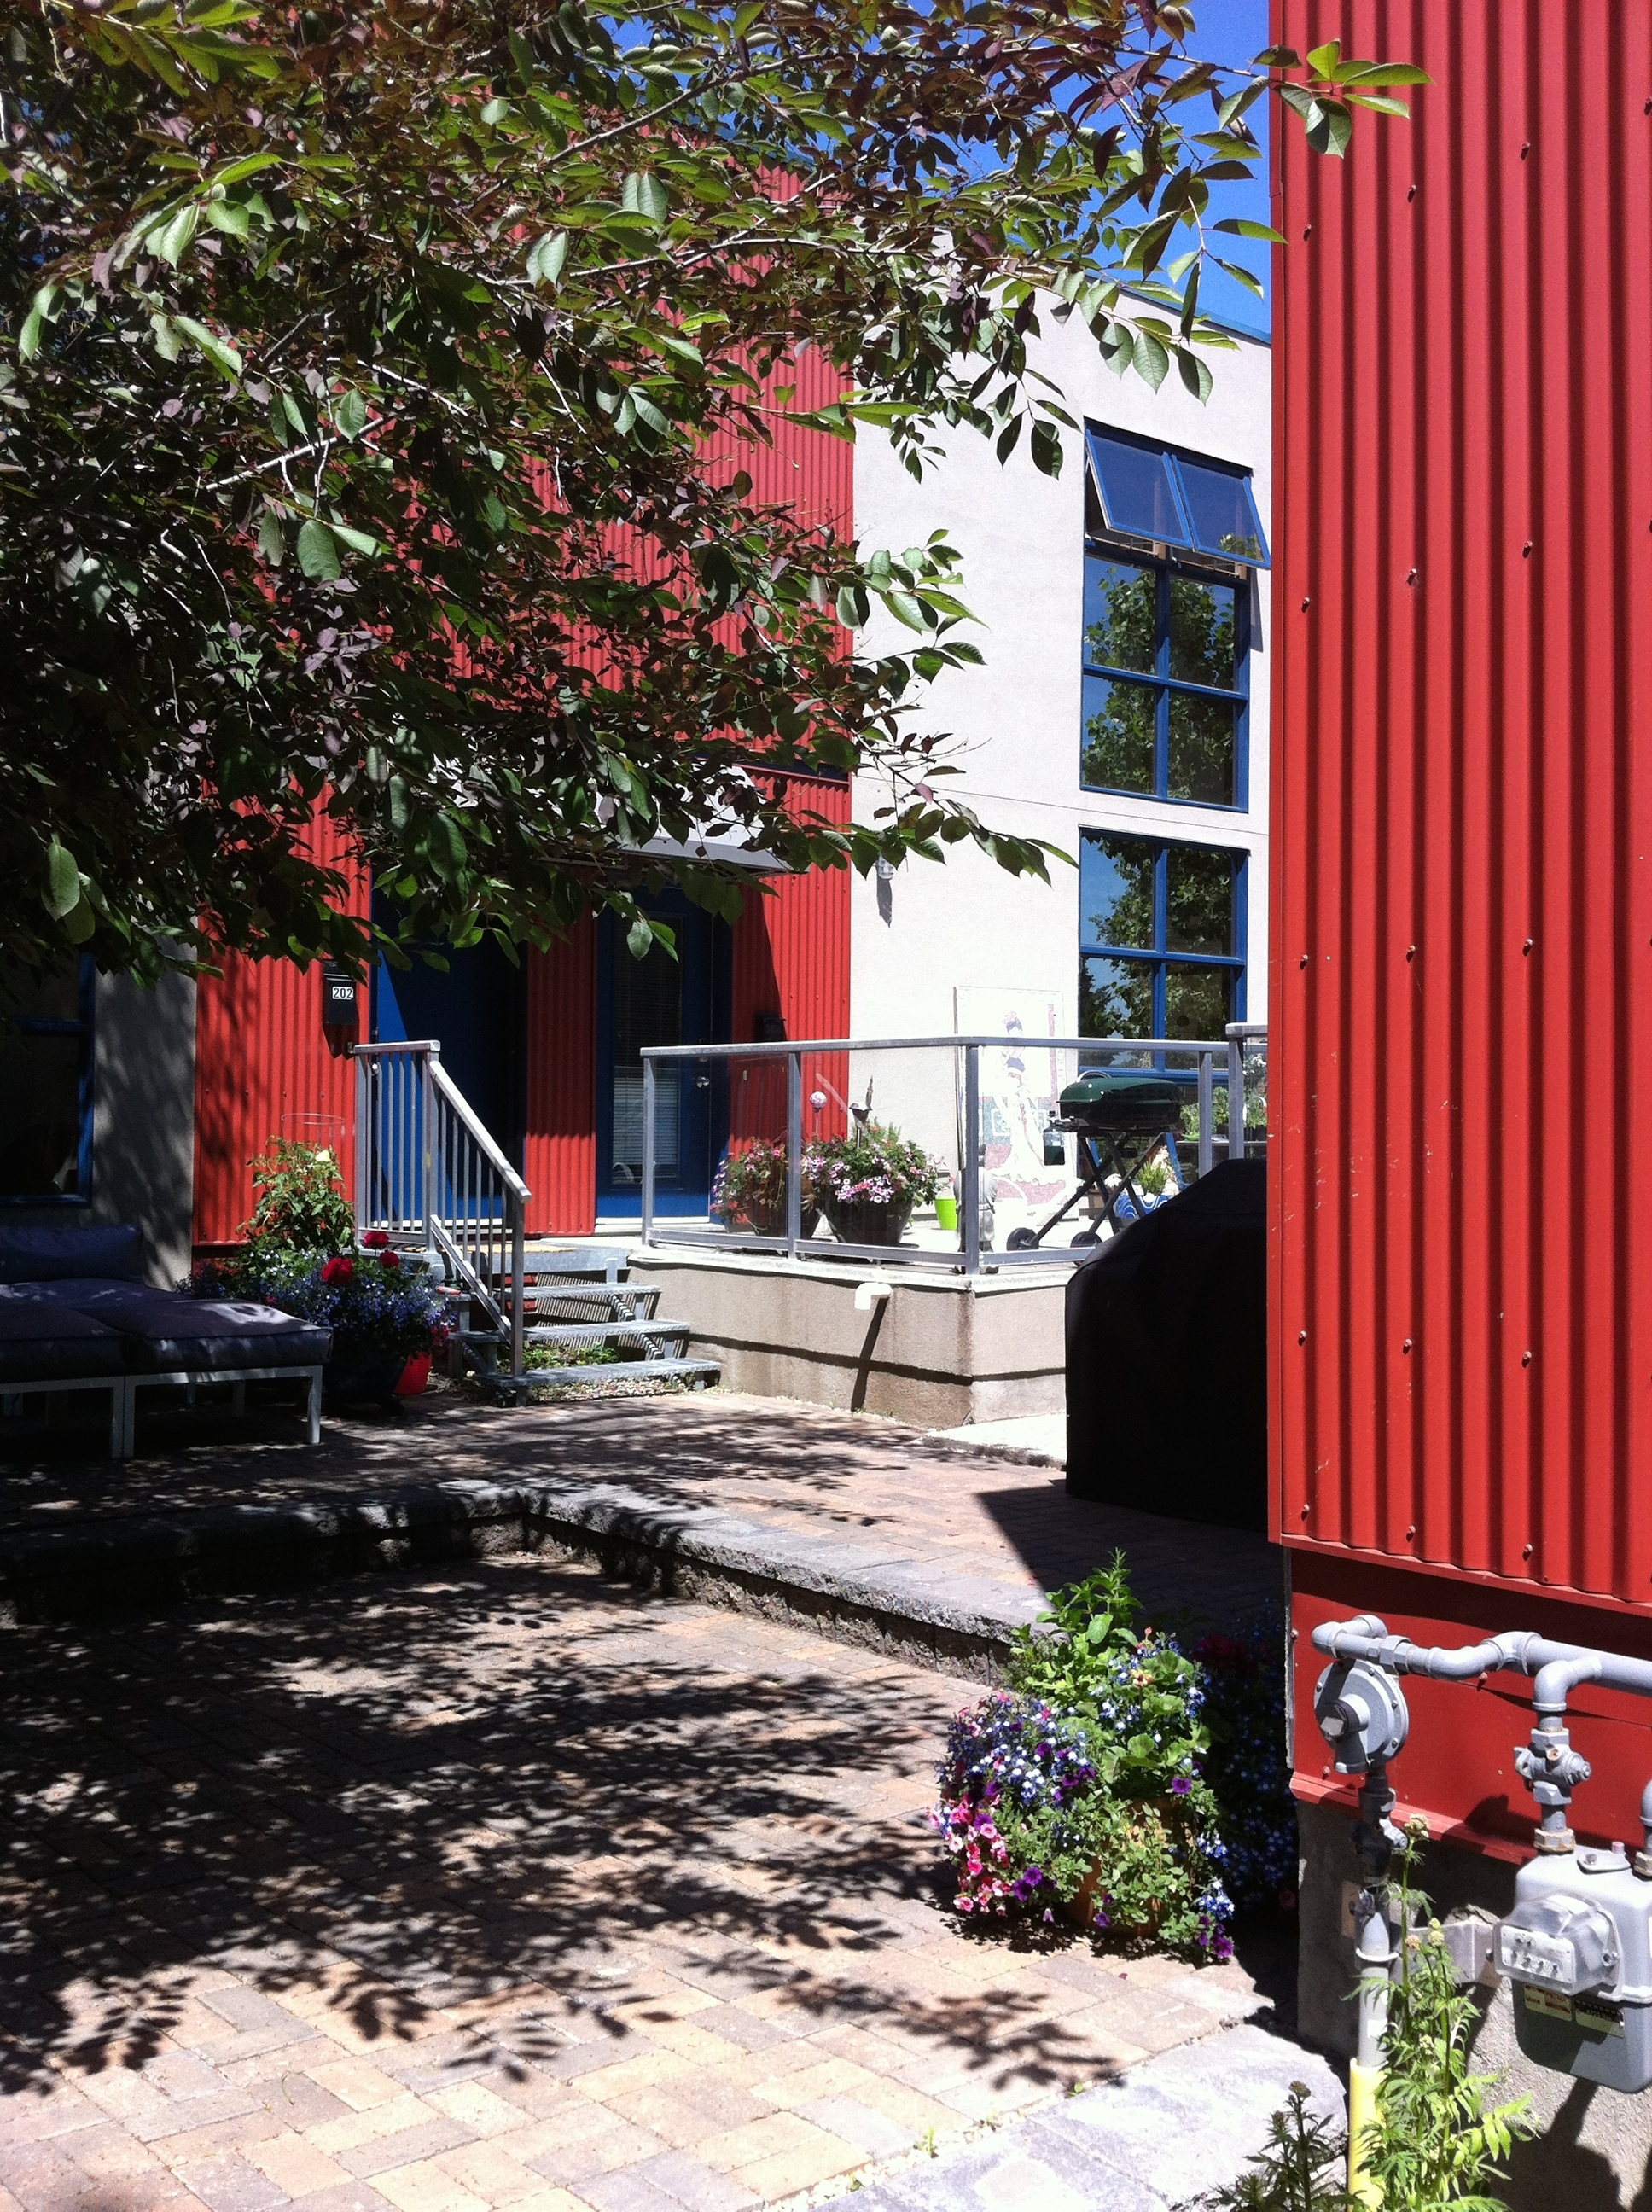 Just a stone's throw from the CPR rail lines, the backyard patios are like a hidden urban oasis.